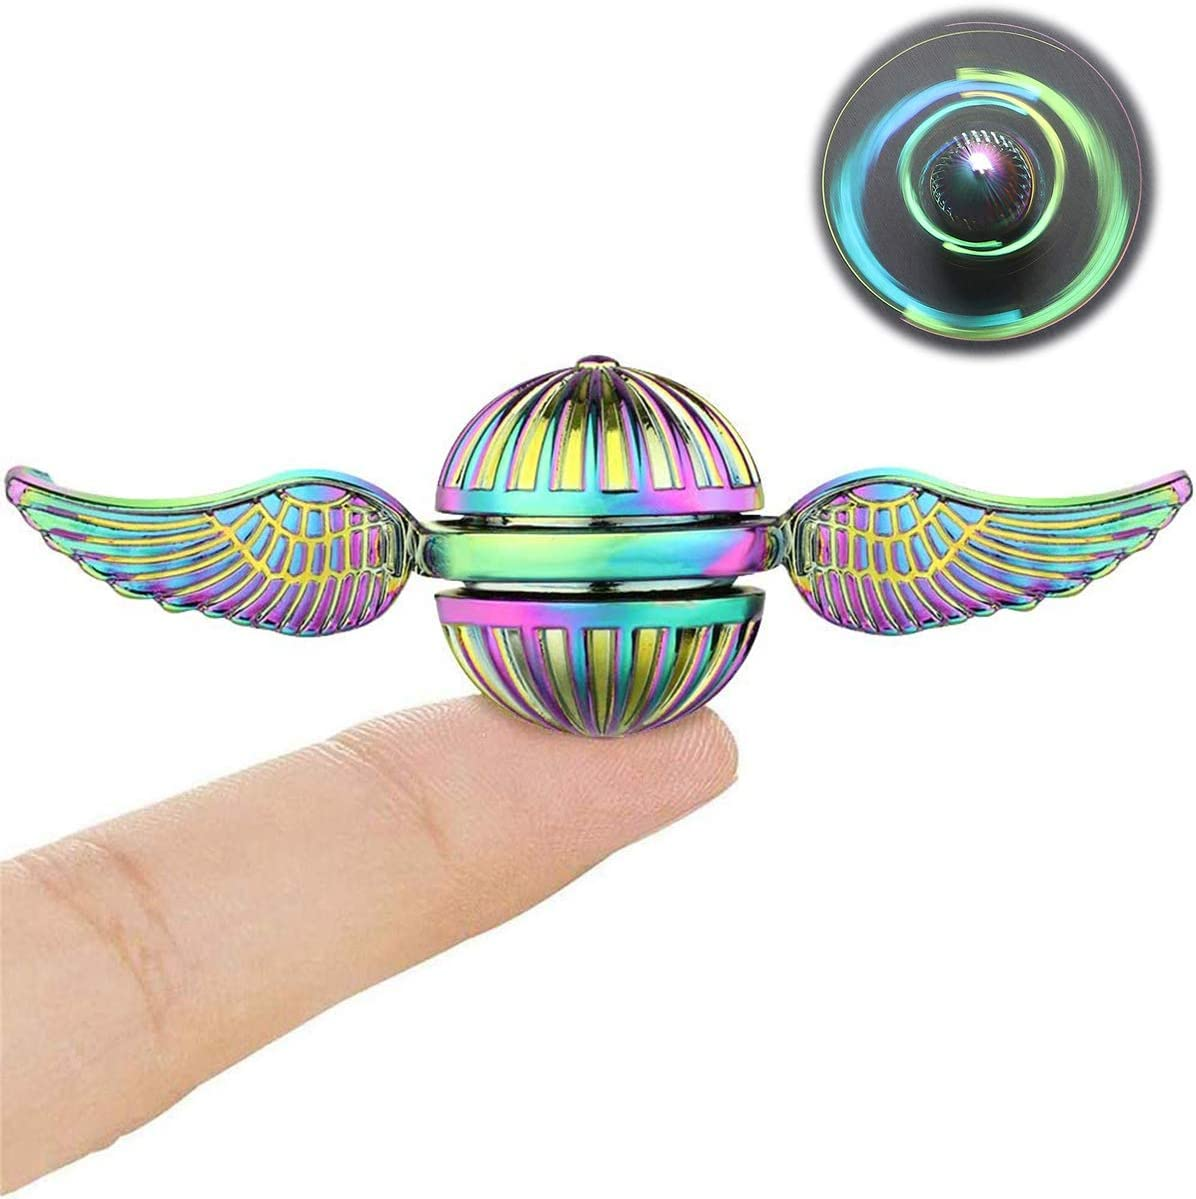 FIDGET Spinner Finger Hand Spin Metal//Ball Steel Stress Relax Toy Special Offer